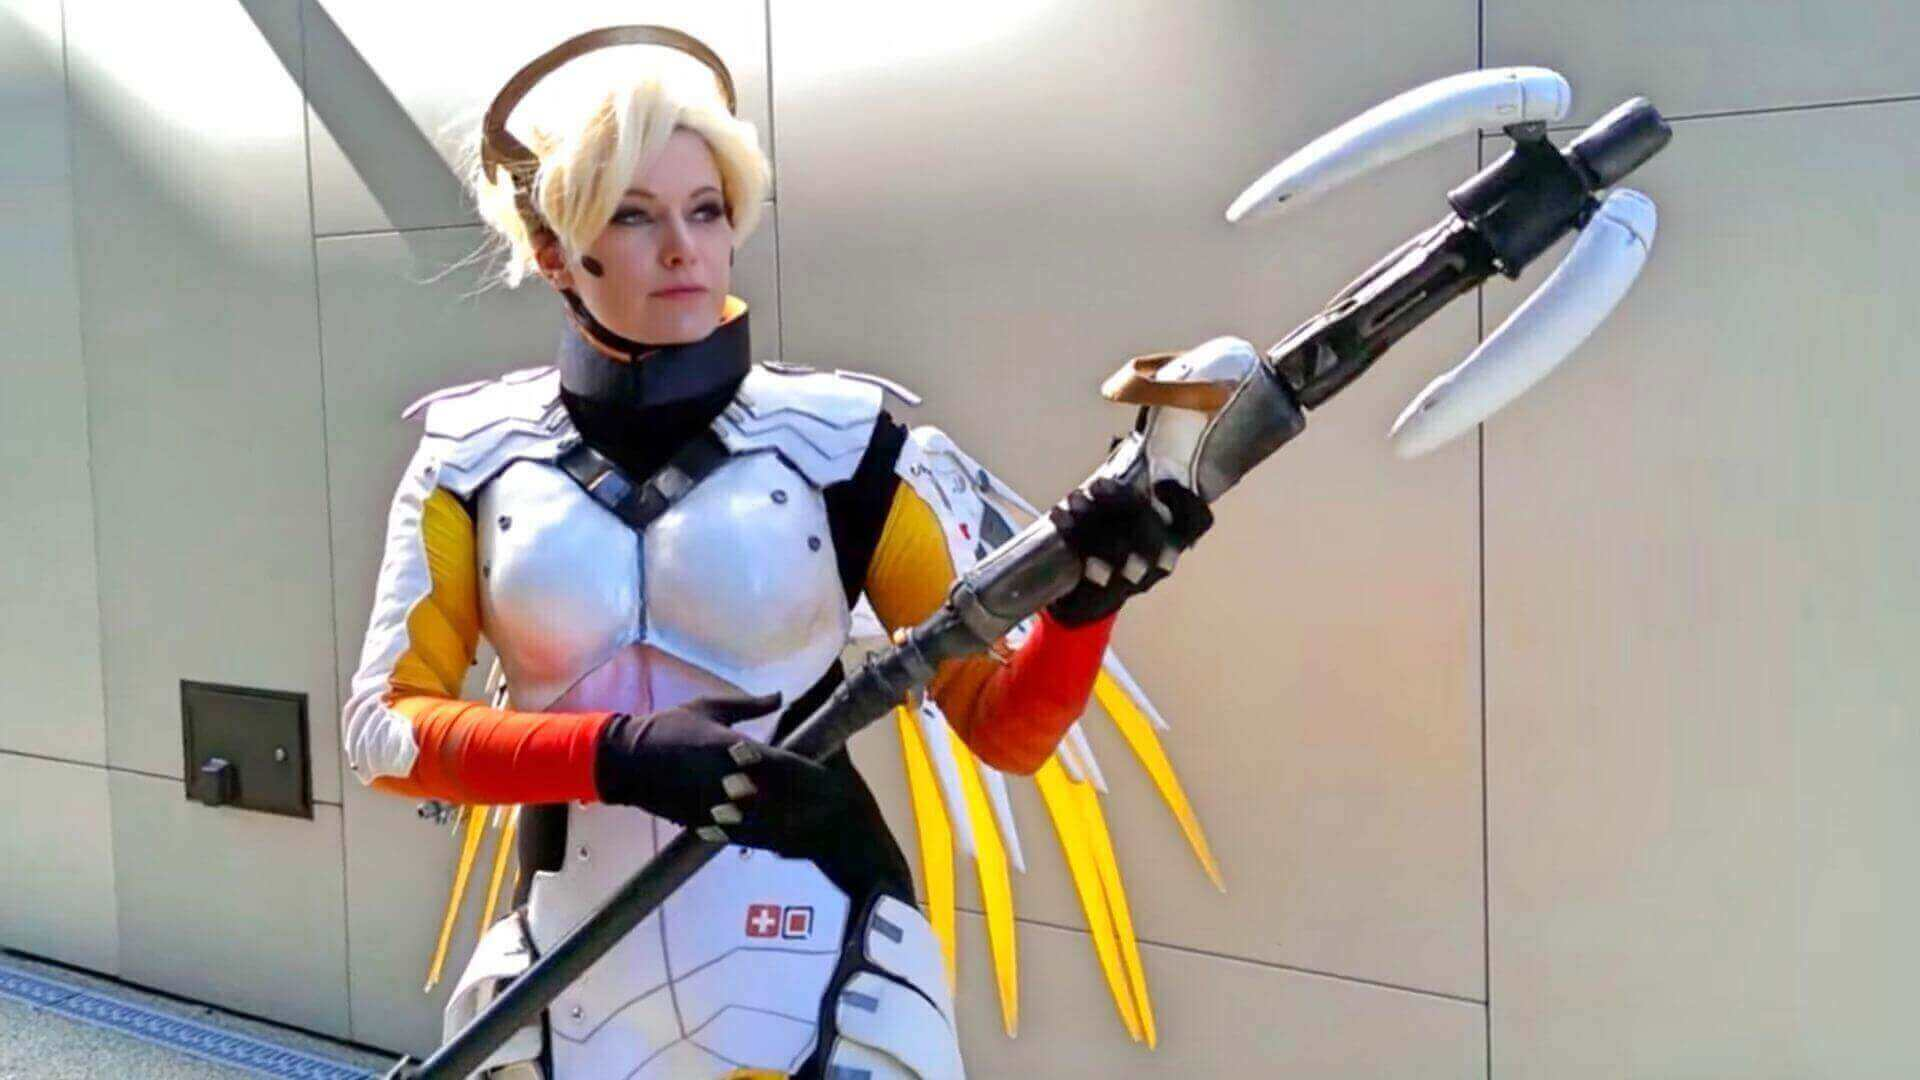 Working Overwatch Mercy's Staff Has Motorized Adjustable Winglets | All3DP